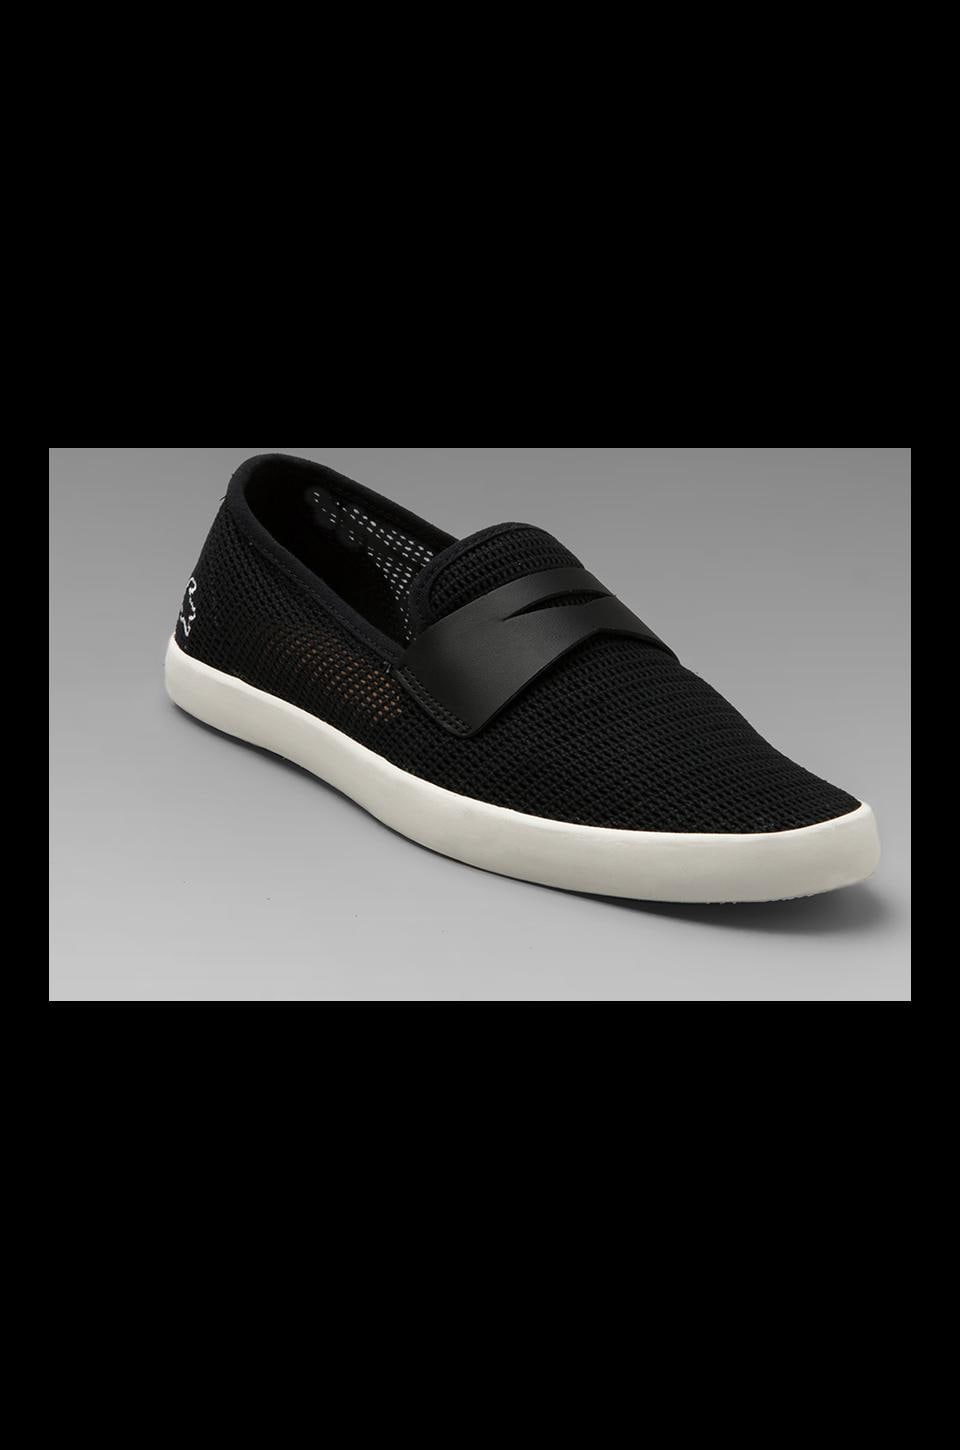 Lacoste Himos 7 in Black